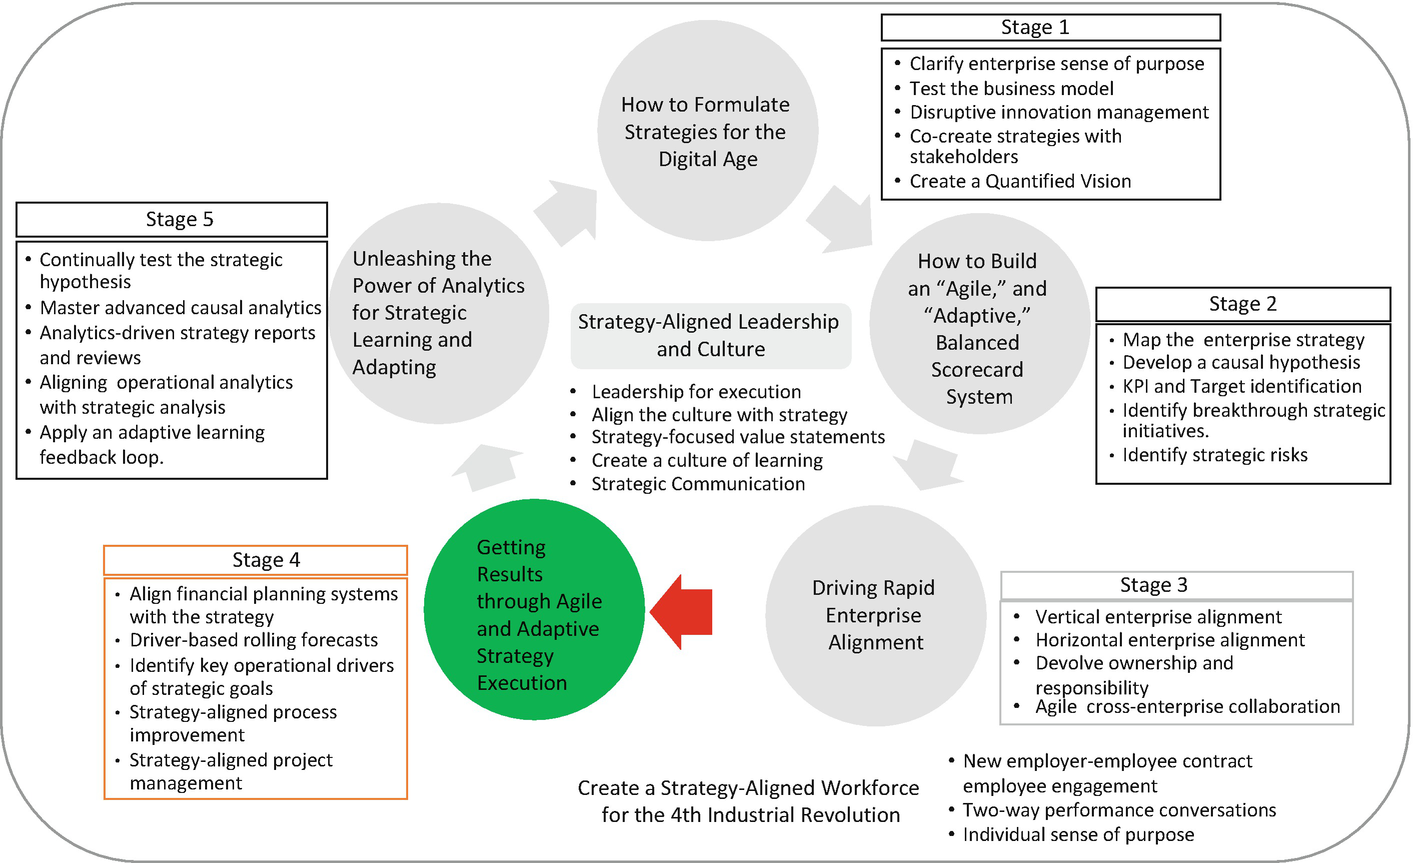 Aligning the Financial and Operational Drivers of Strategic